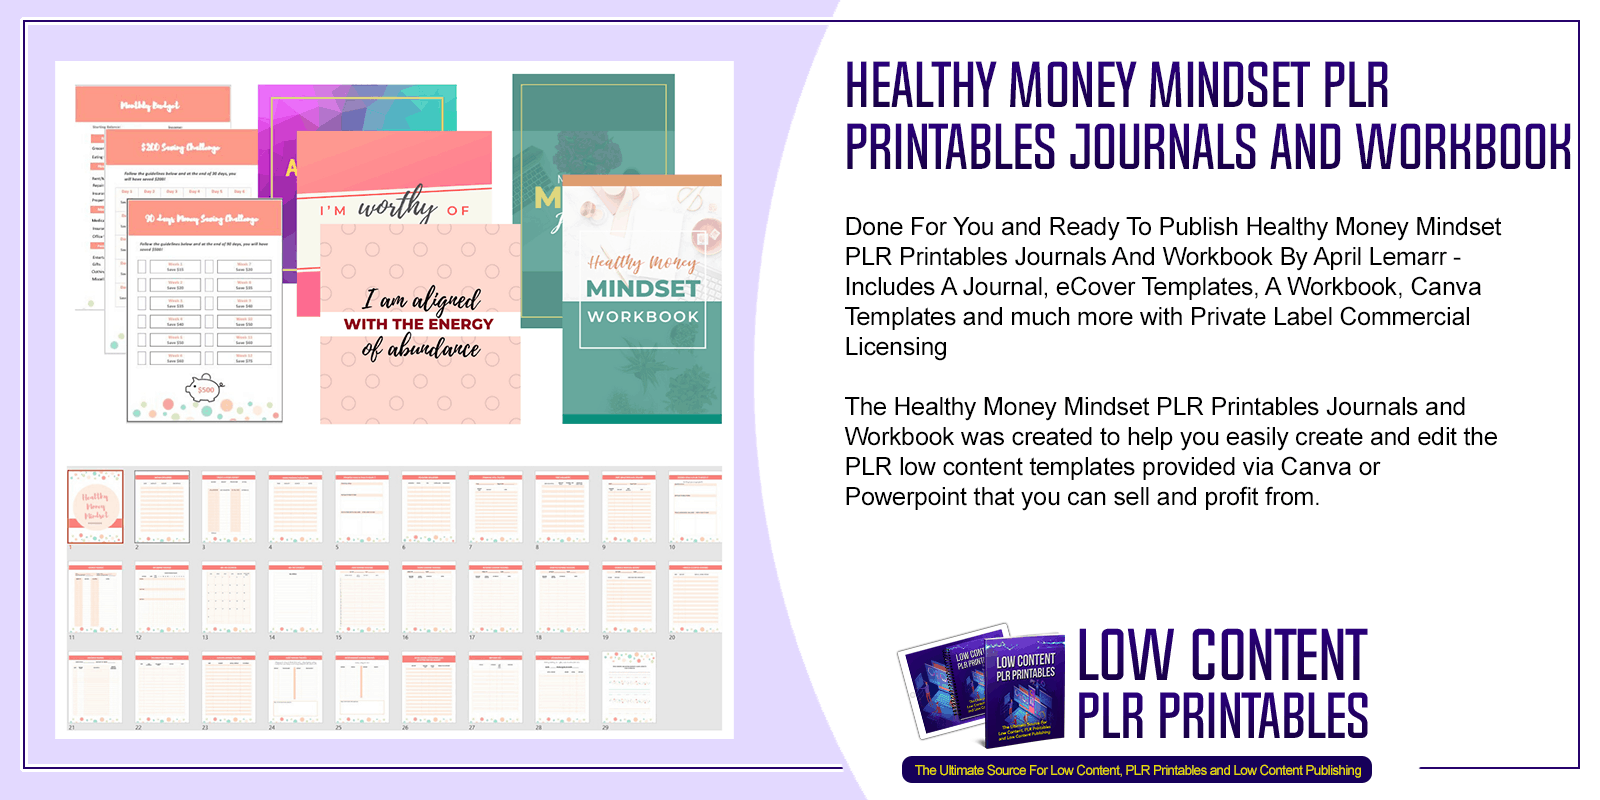 Healthy Money Mindset PLR Printables Journals and Workbook